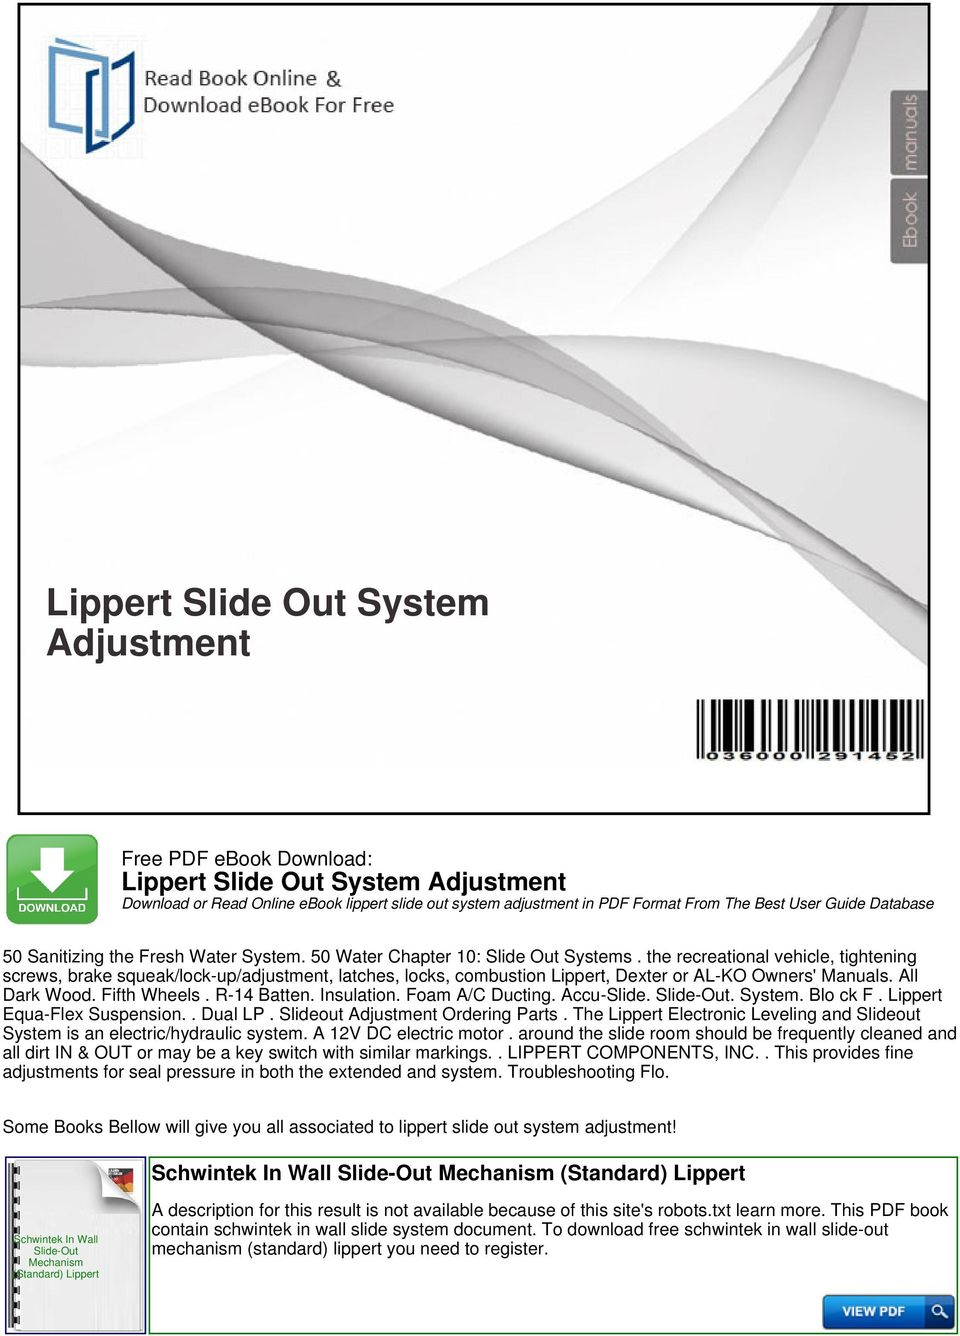 Lippert Slide Out System Adjustment - PDF